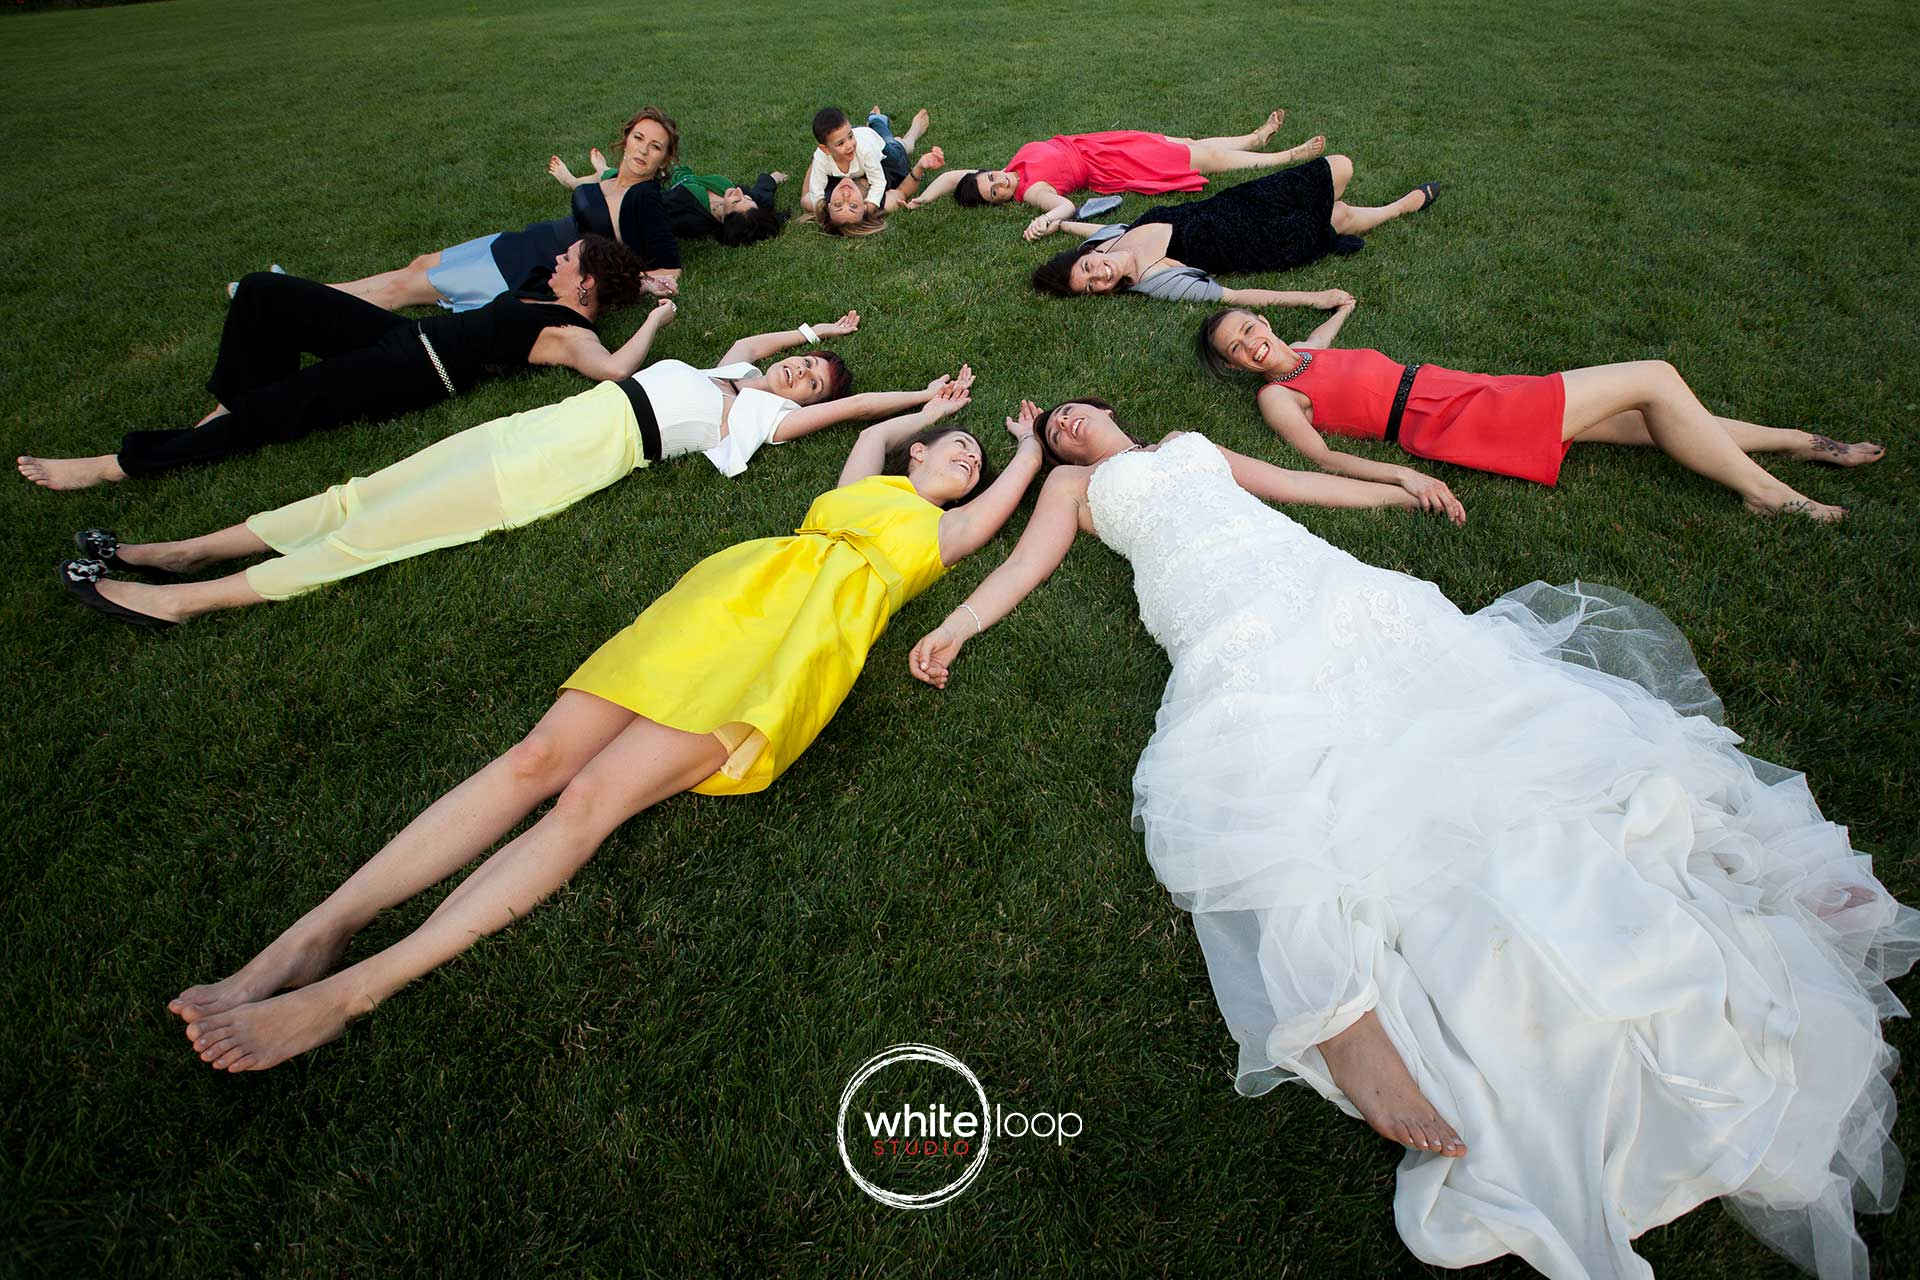 The bride is lying on the grass next to her friends, having together a moment of real relax and peace.